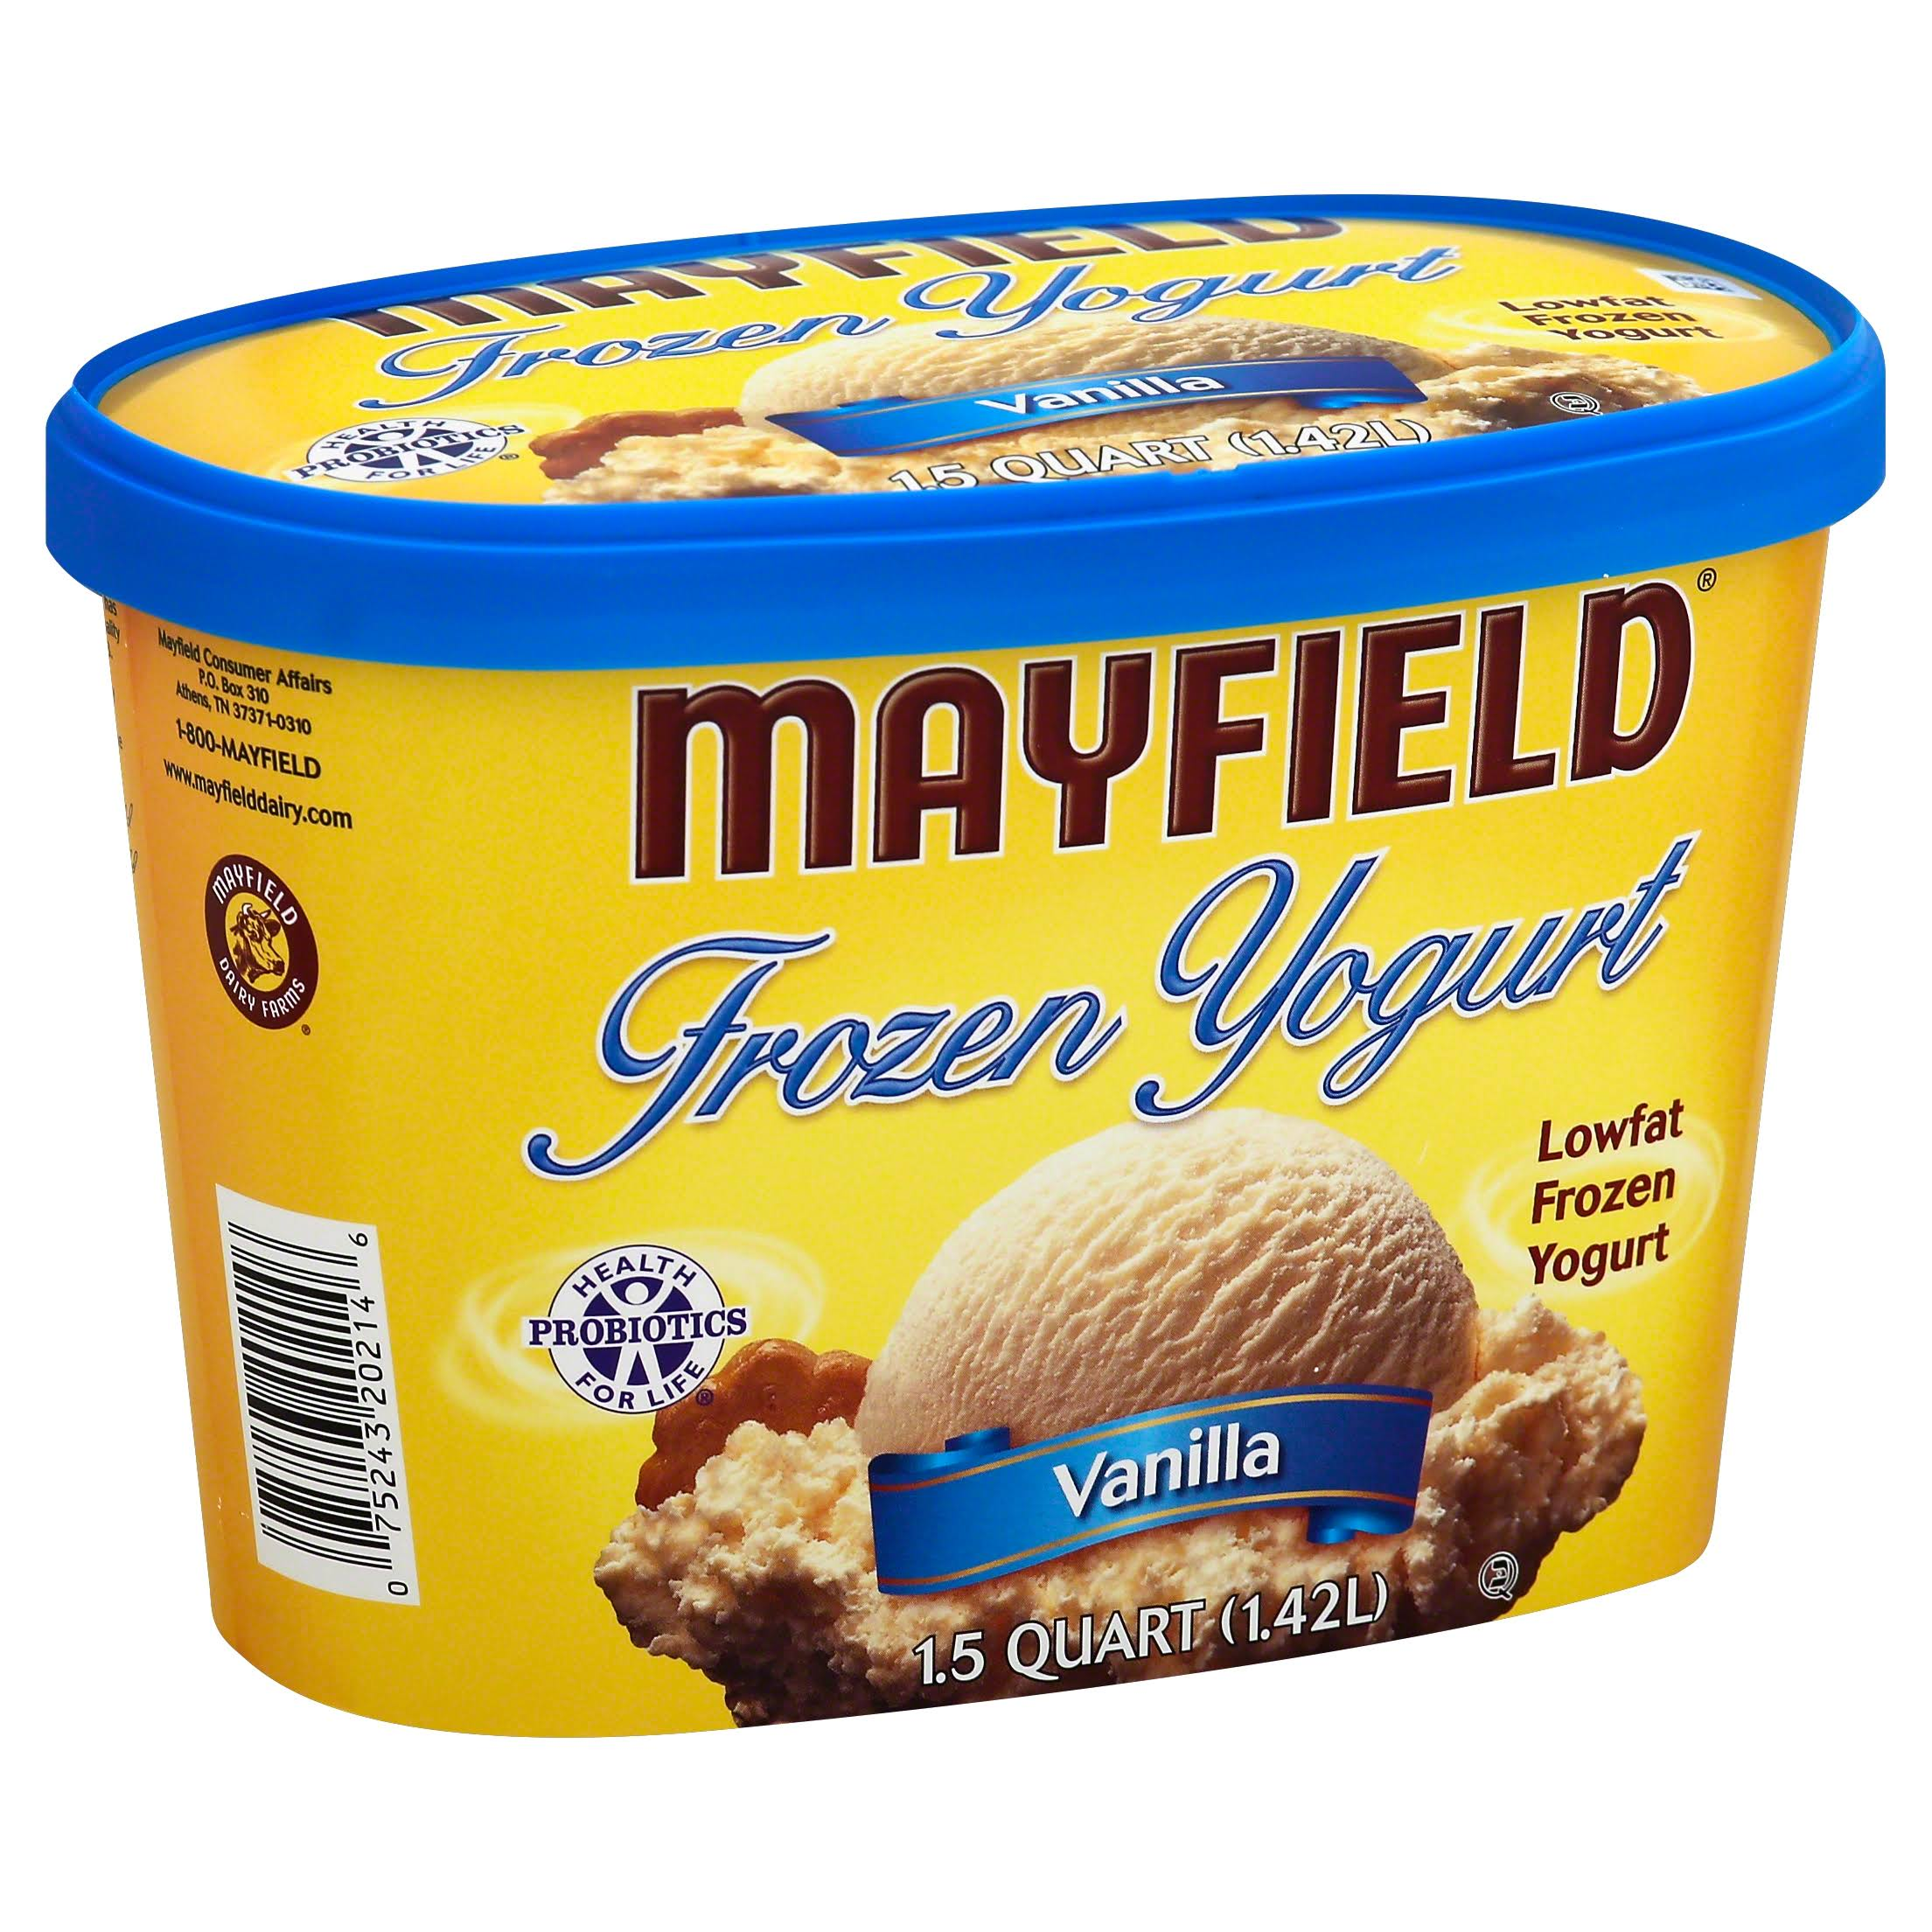 Mayfield Frozen Yogurt, Lowfat, Vanilla - 1.5 qt